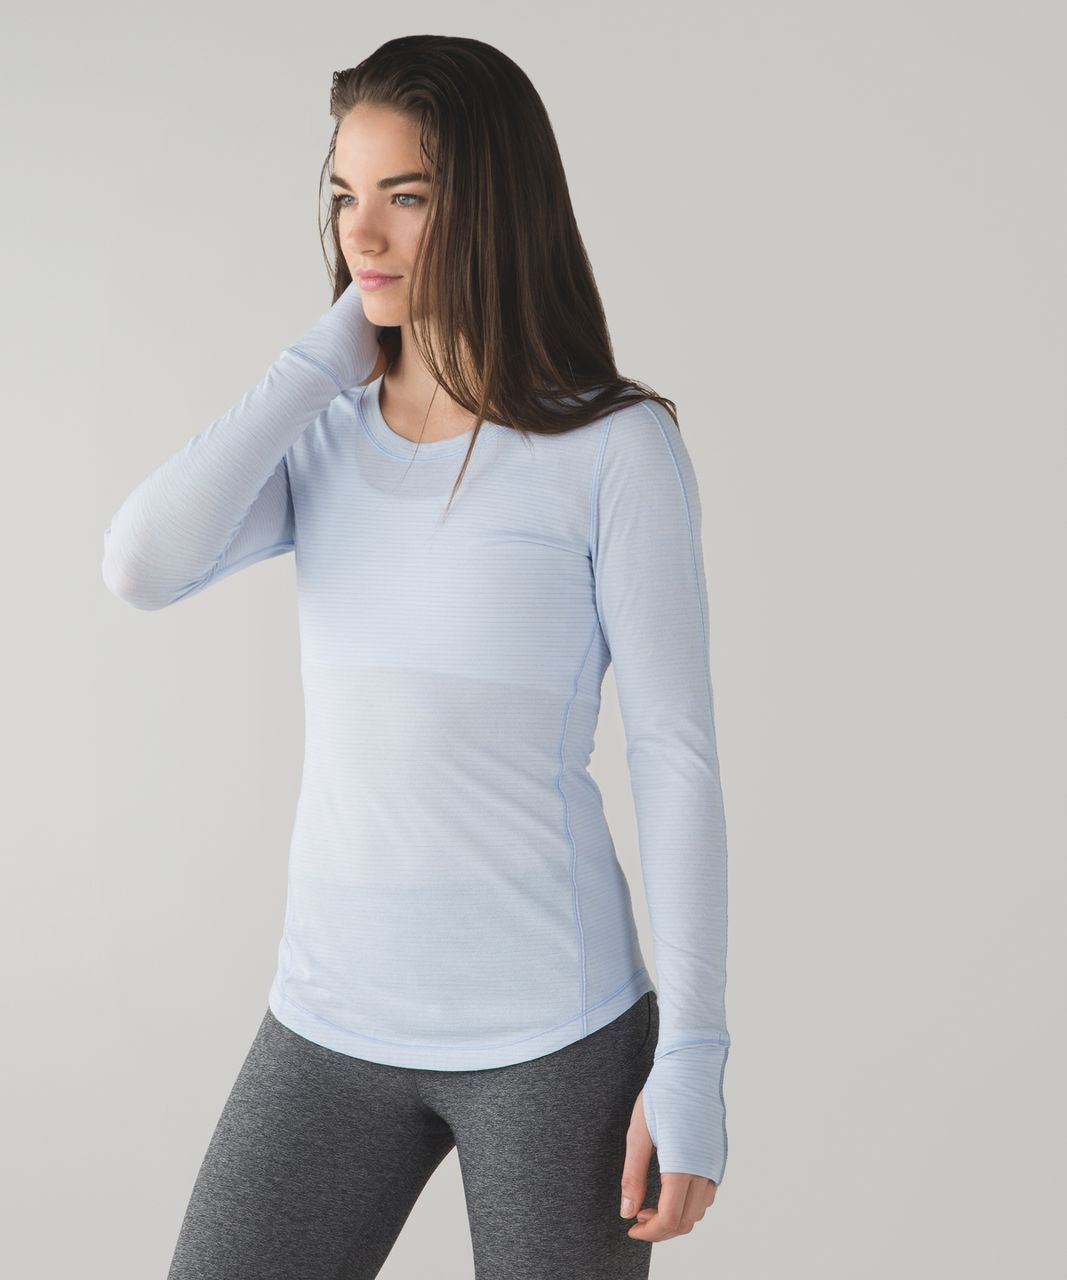 Lululemon 5 Mile Long Sleeve - Heathered Chalk